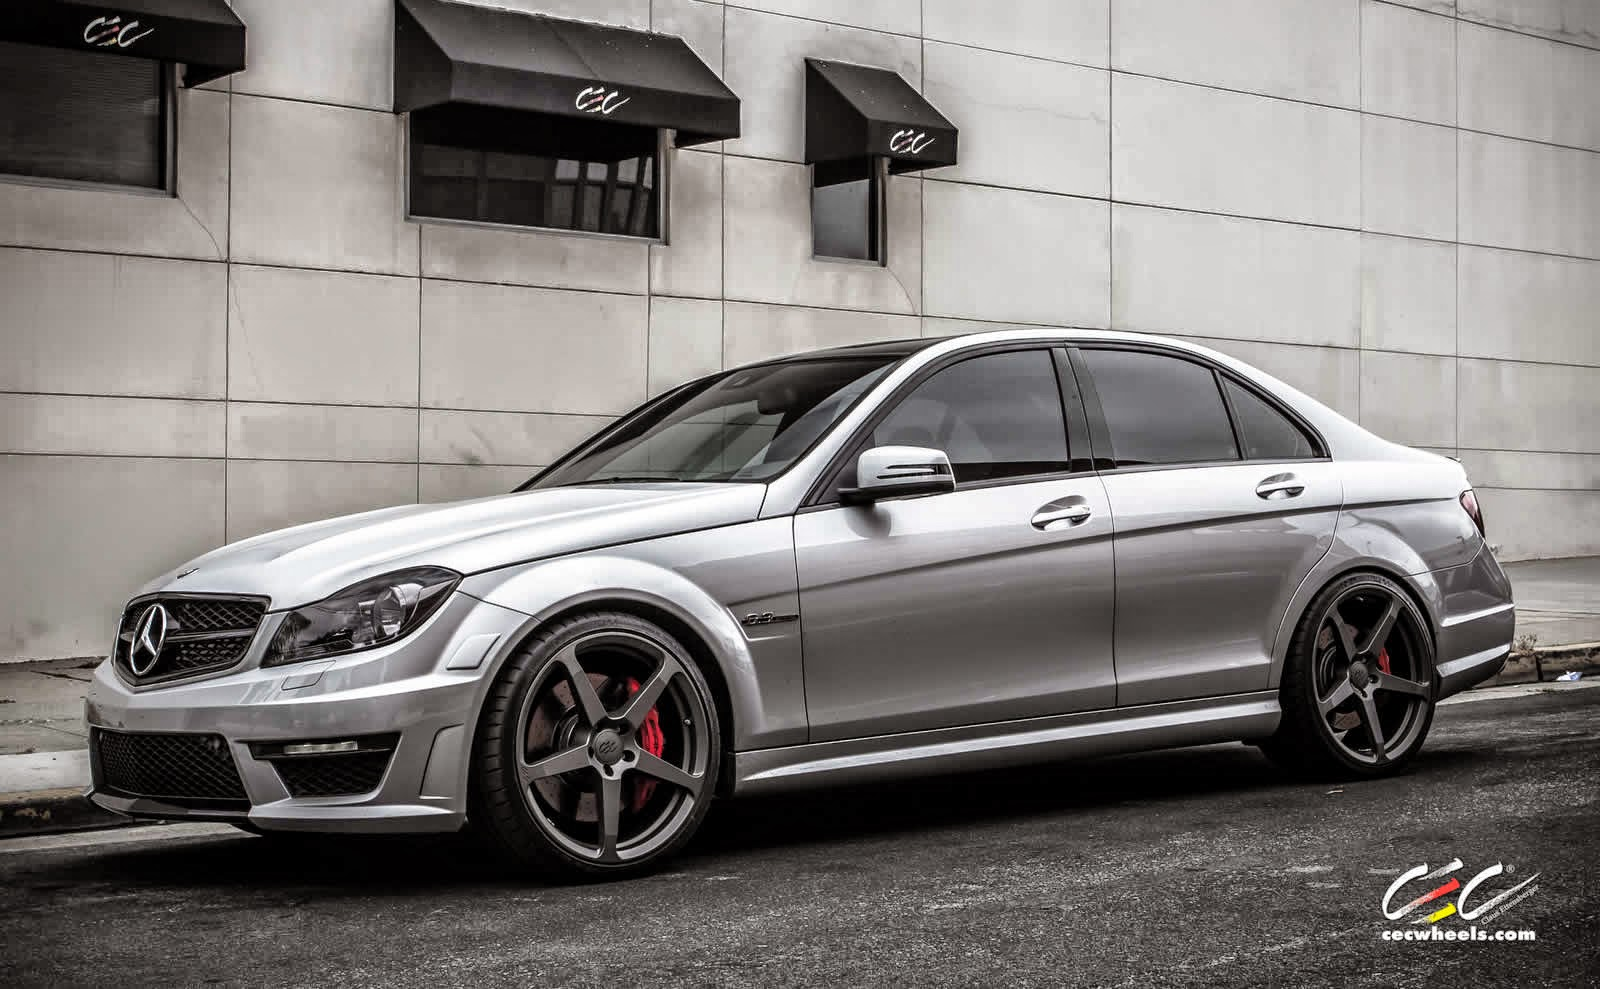 mercedes benz w204 c63 amg with cec c884 wheels benztuning. Black Bedroom Furniture Sets. Home Design Ideas